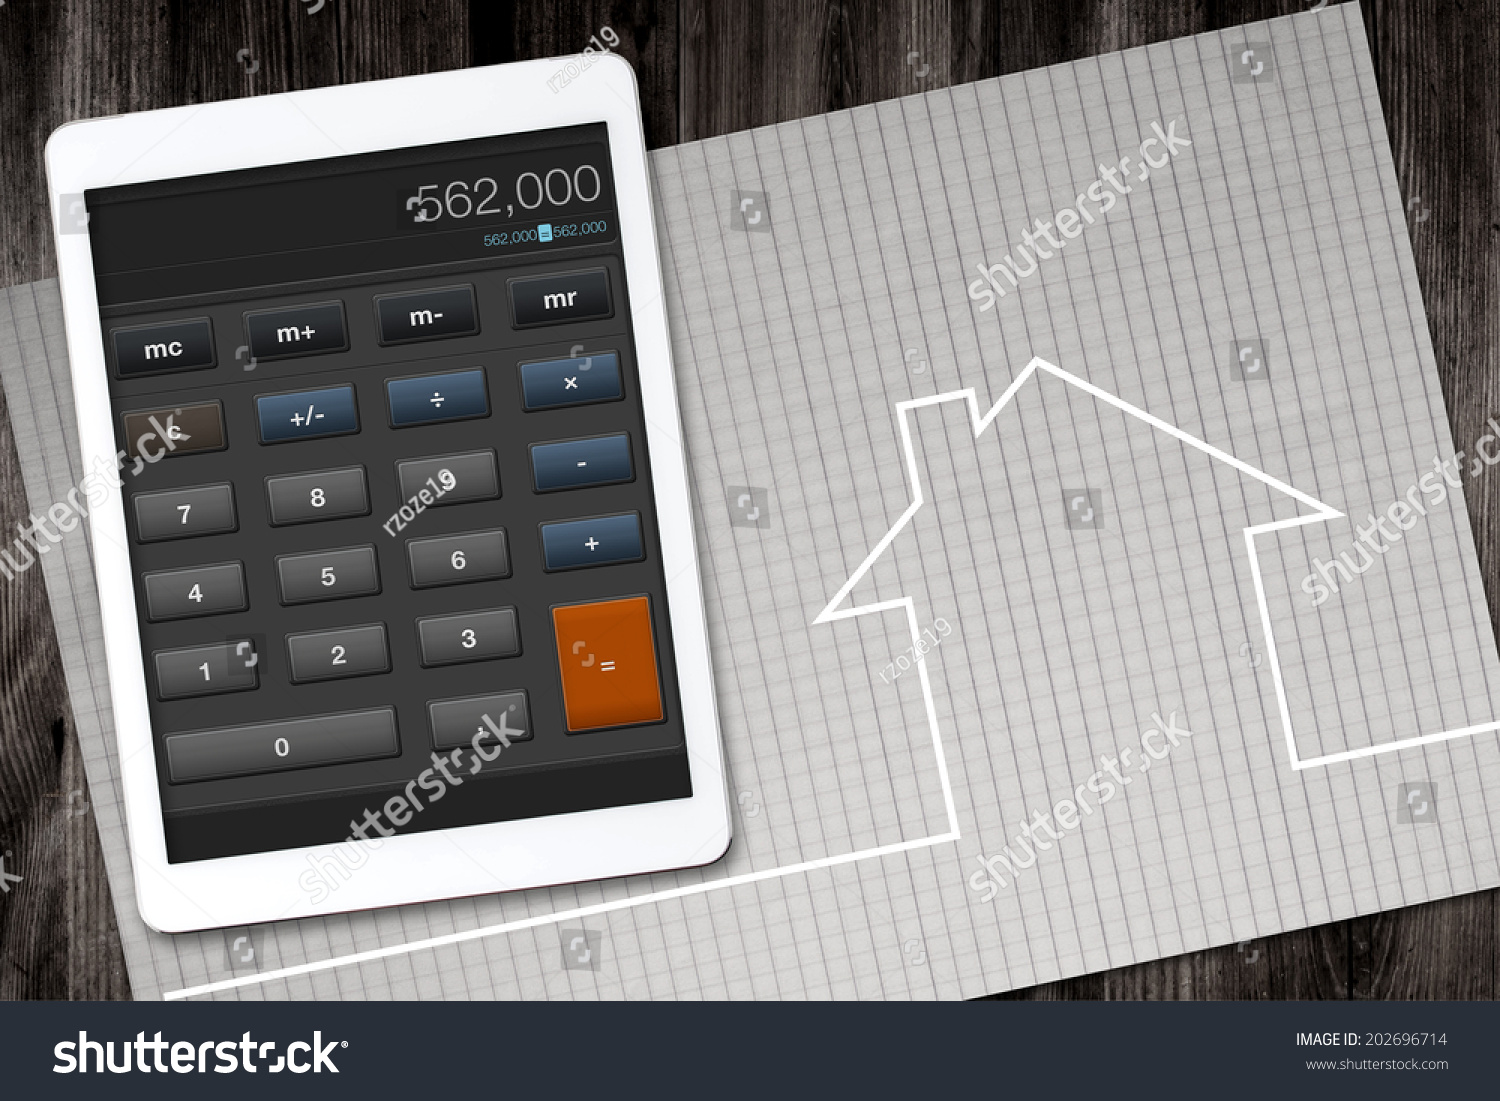 Home construction cost calculator stock photo 202696714 for Home construction costs calculator